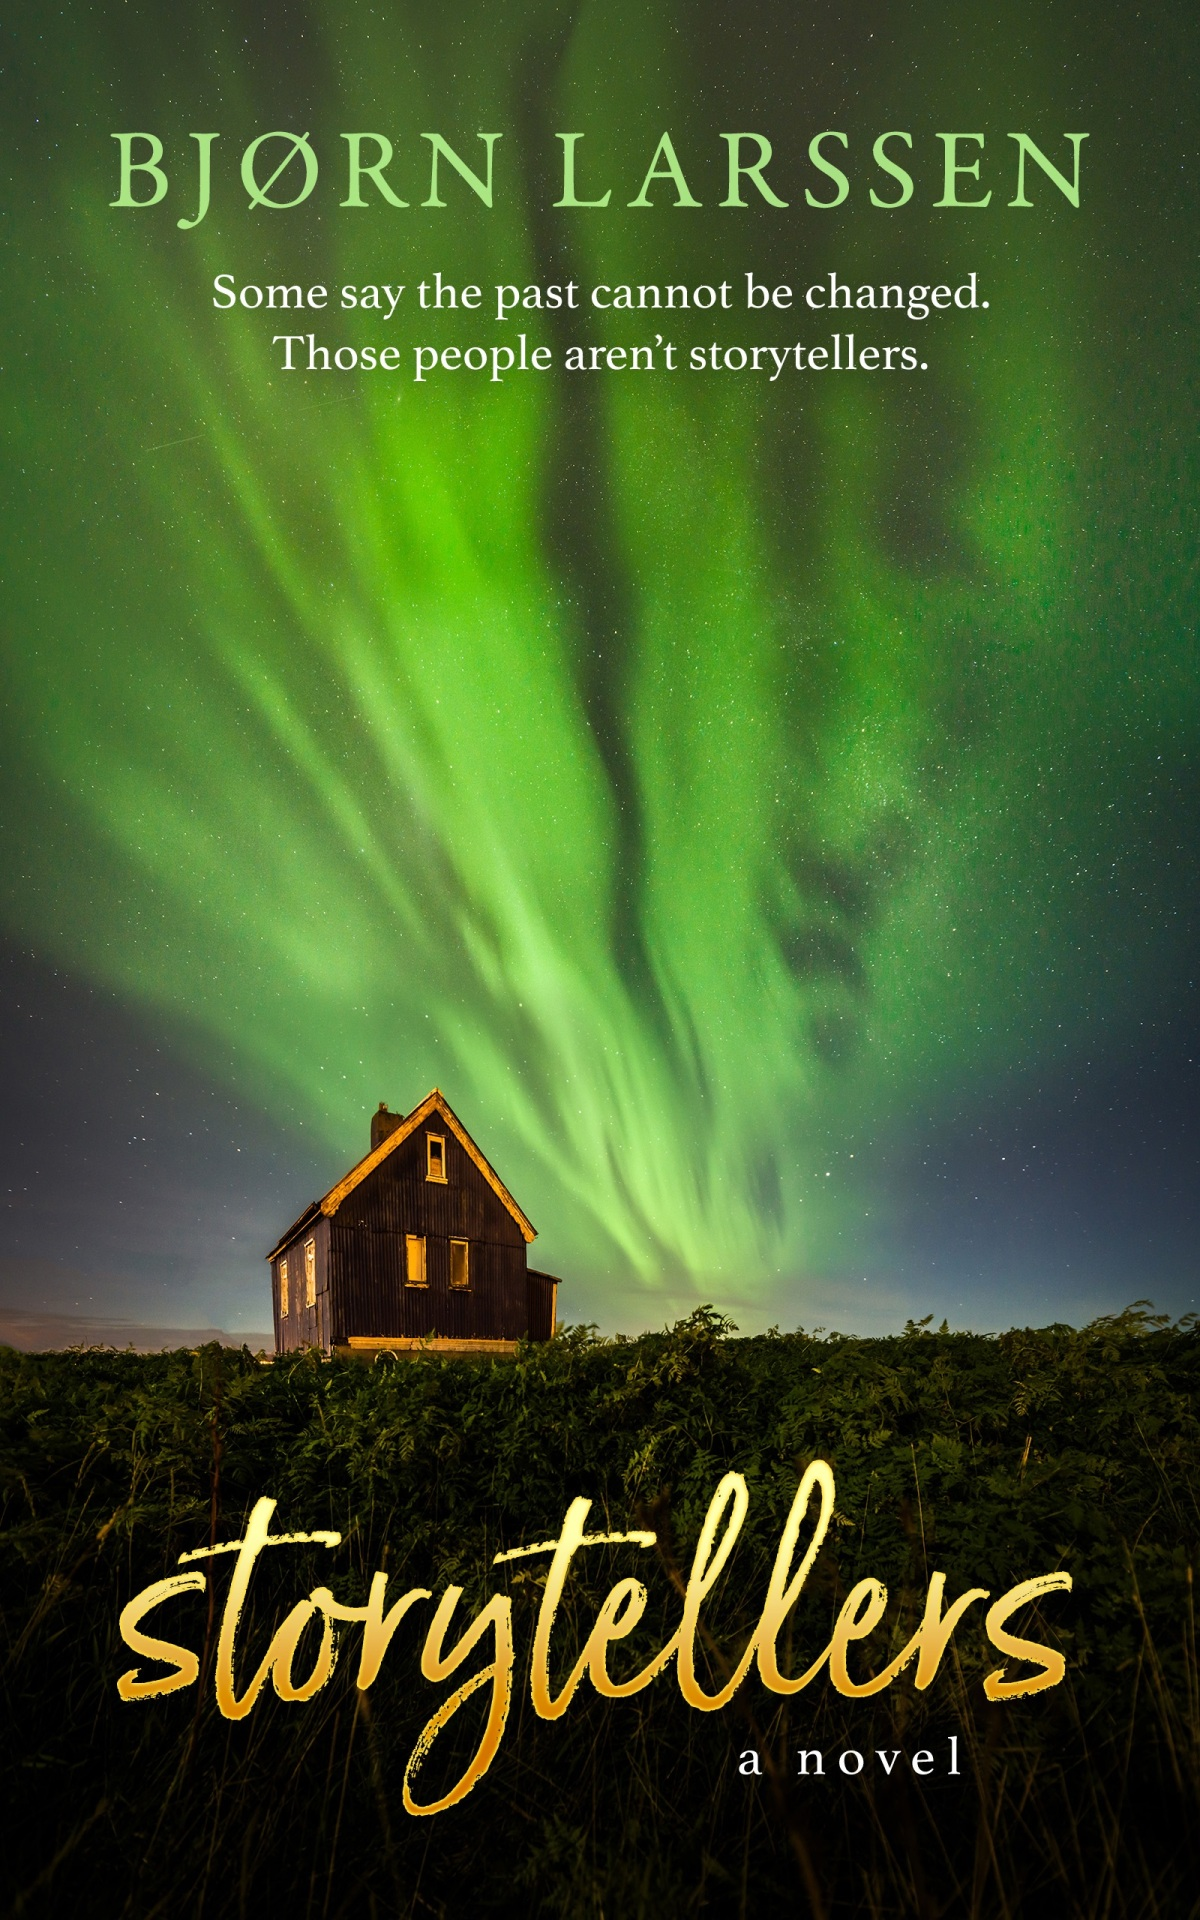 Storytellers, by Bjørn Larssen: A Release-Day Review